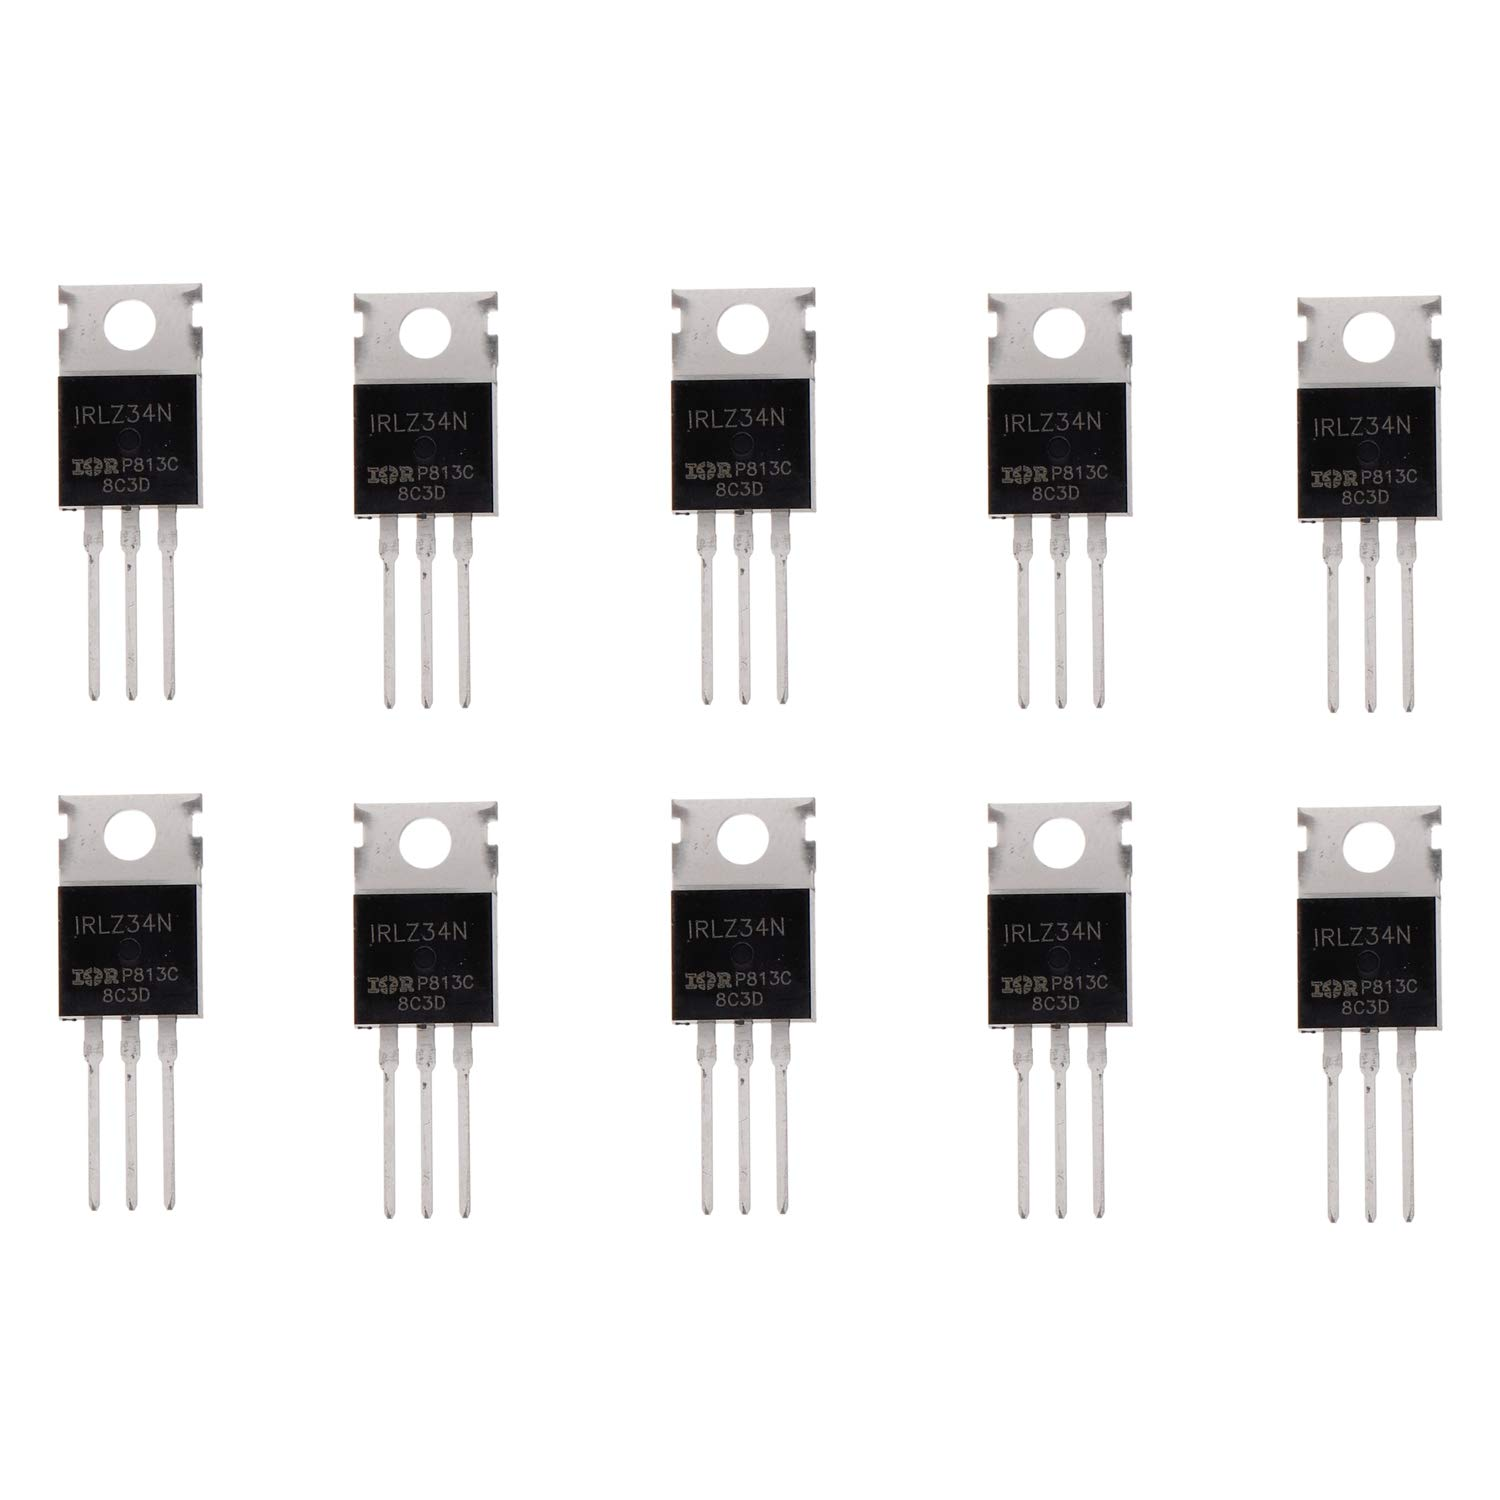 pack of 10 Pcs BOJACK IRLZ34N MOSFET 30 A 55 V IRLZ34NPBF N-channel field effect transistors TO-220AB